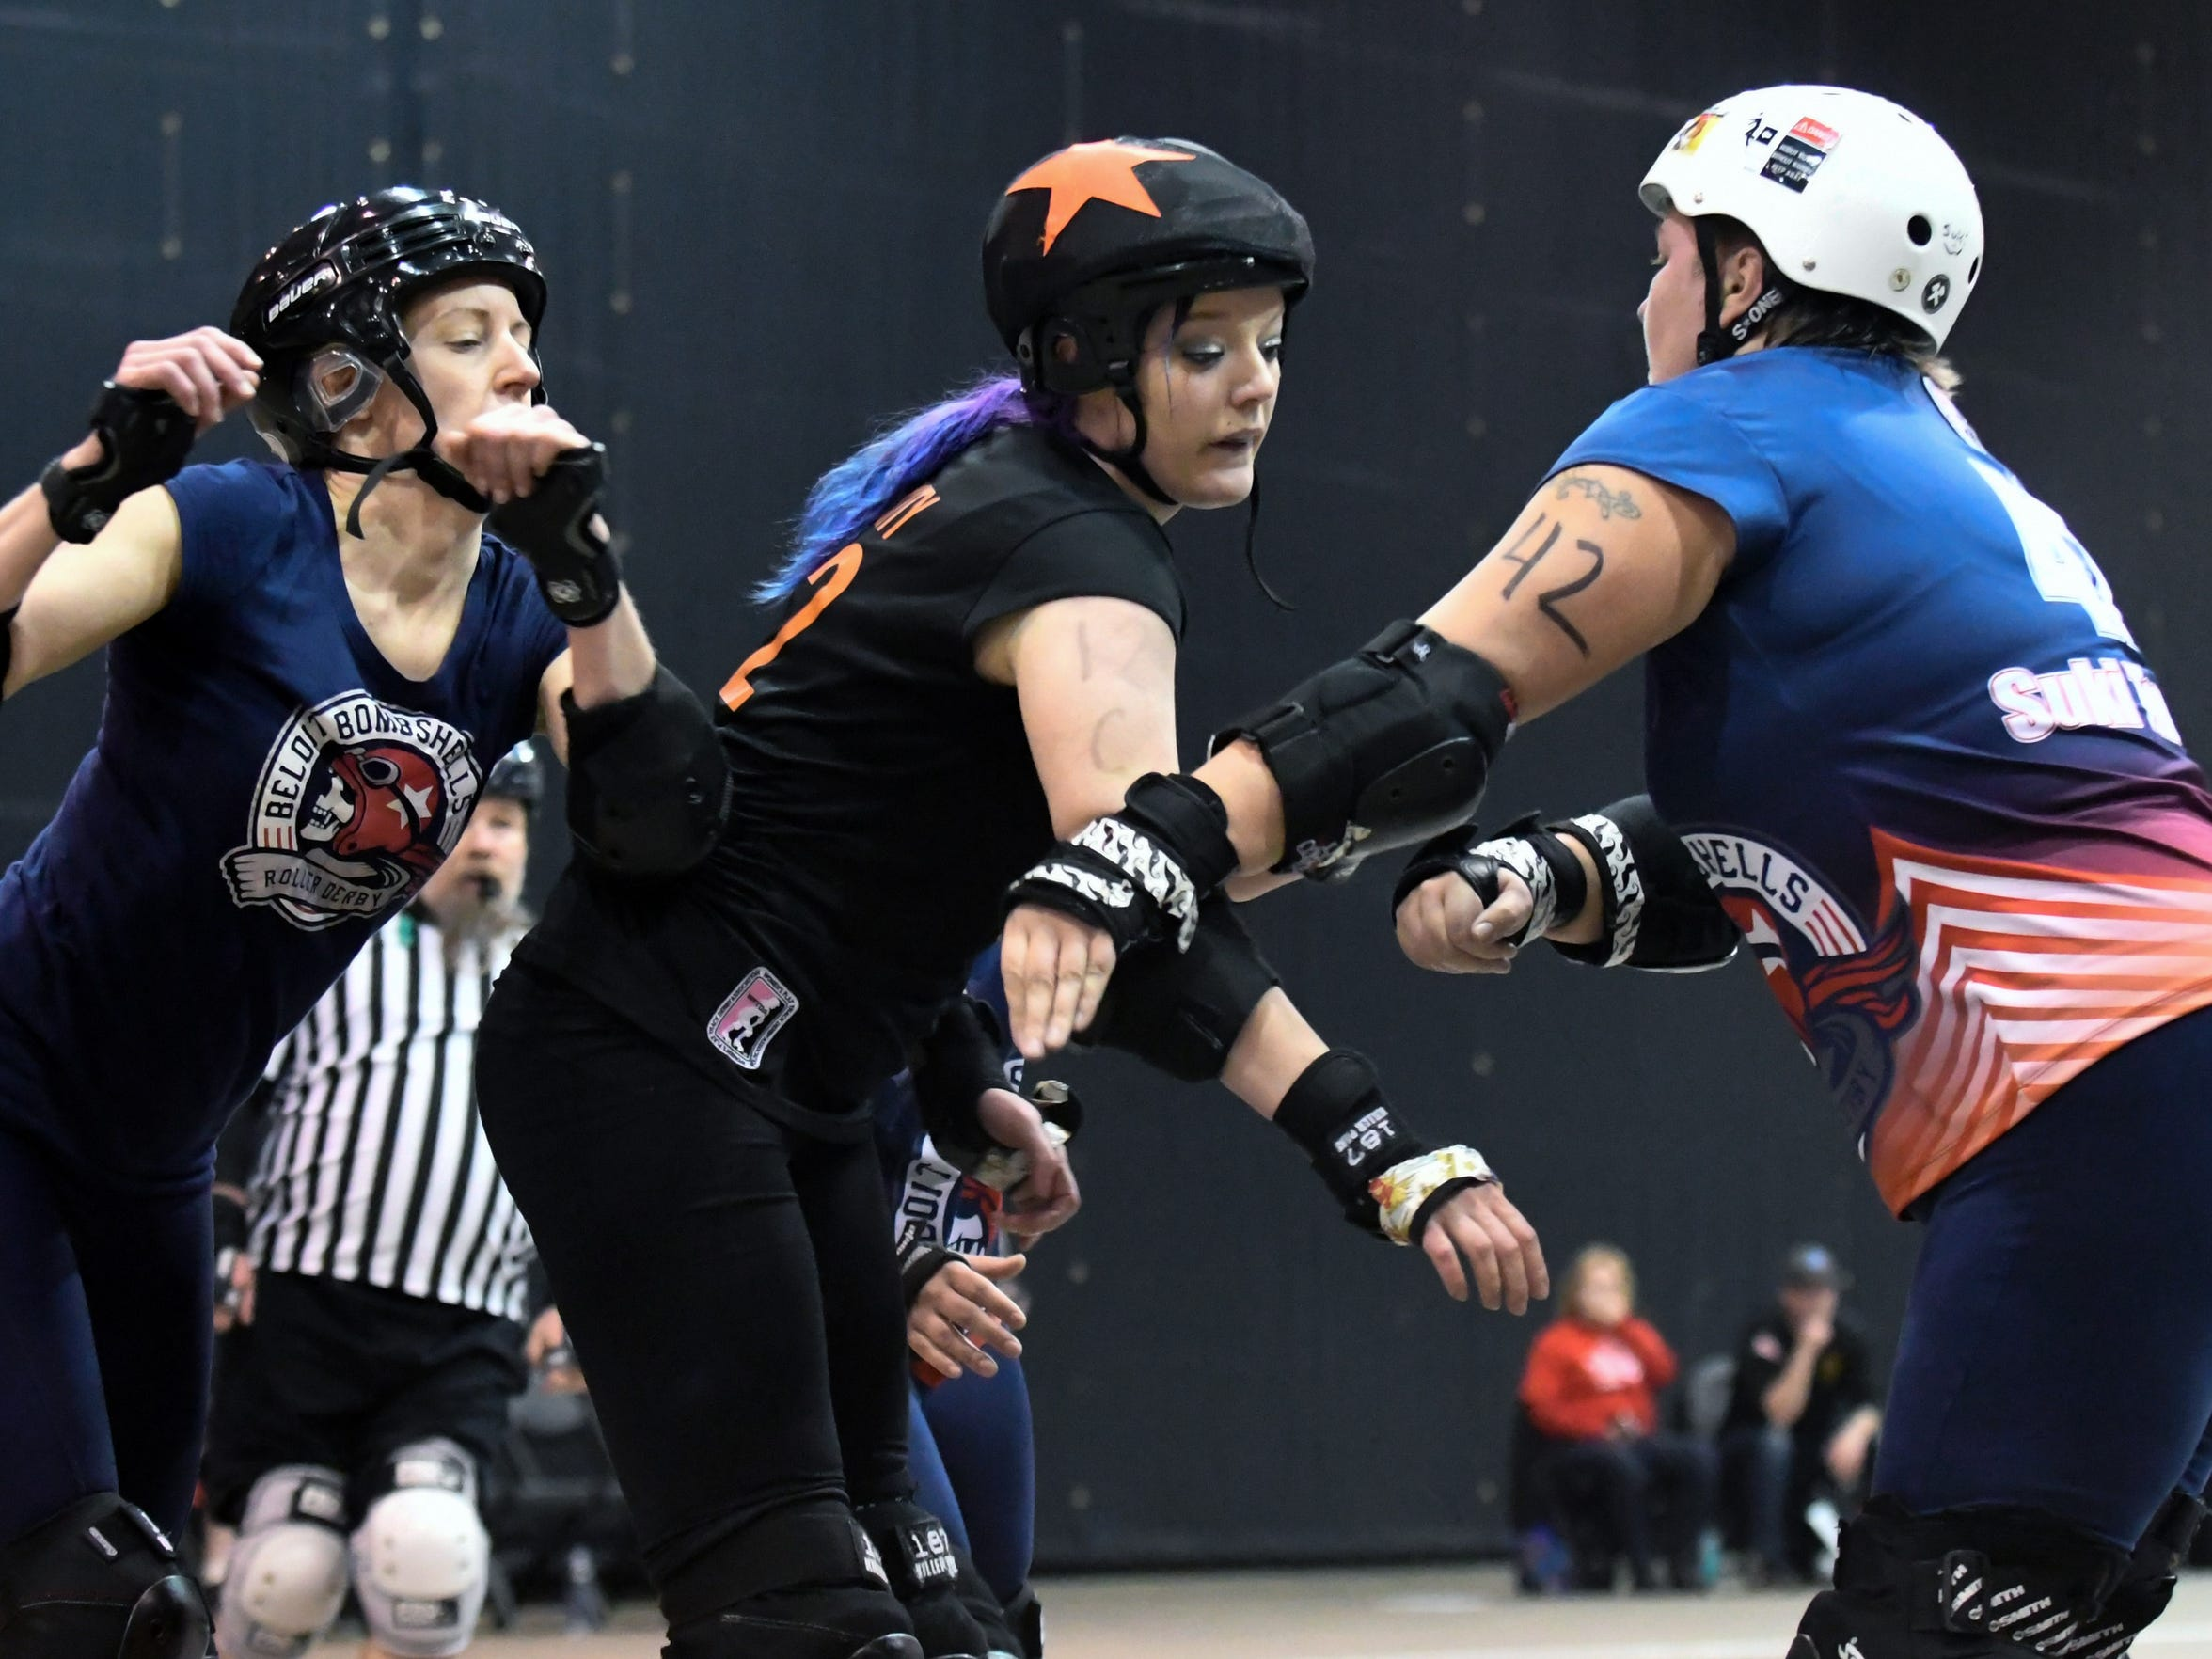 Cynthia 'Cyn City' Rink is a jammer for the Battle Creek Cereal Killers Roller Derby Team.